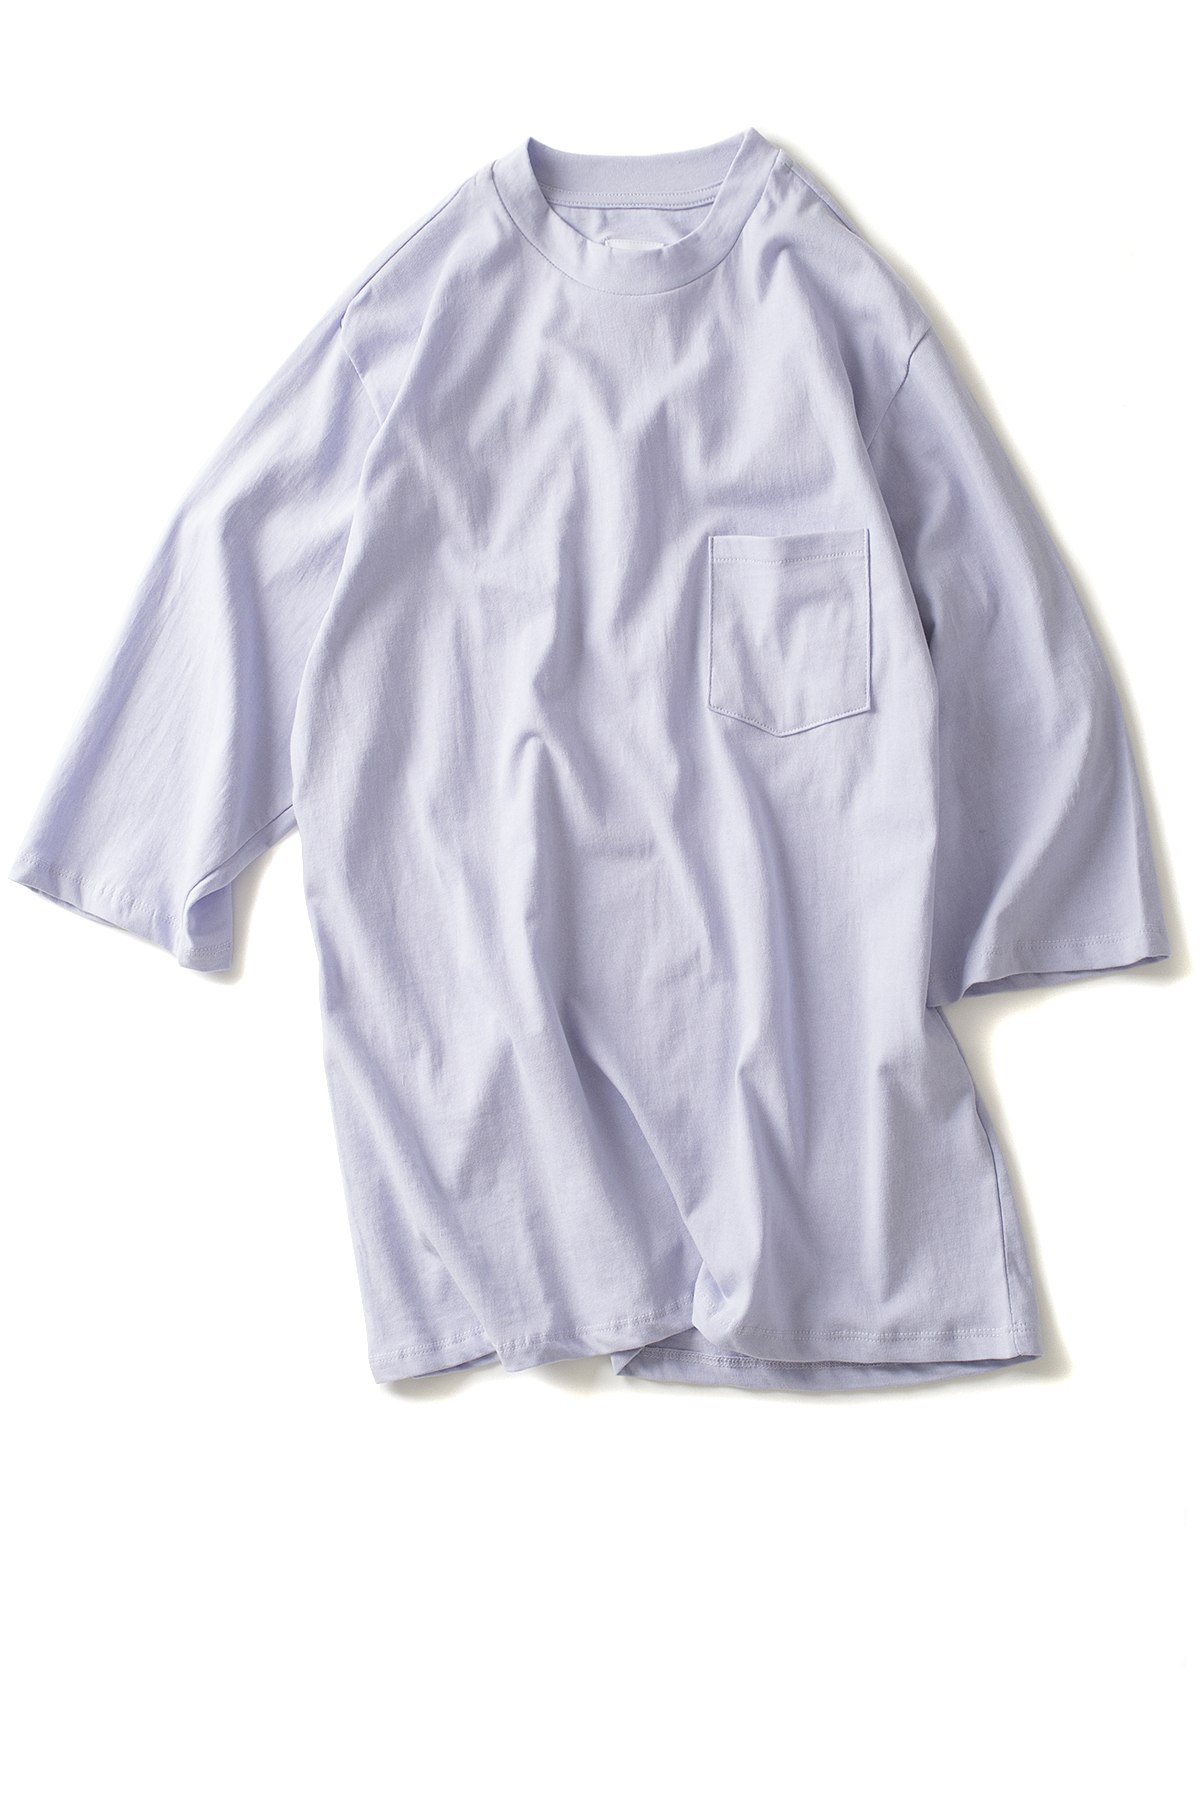 forumwear : One Side Raglan T-Shirt (Lilac)